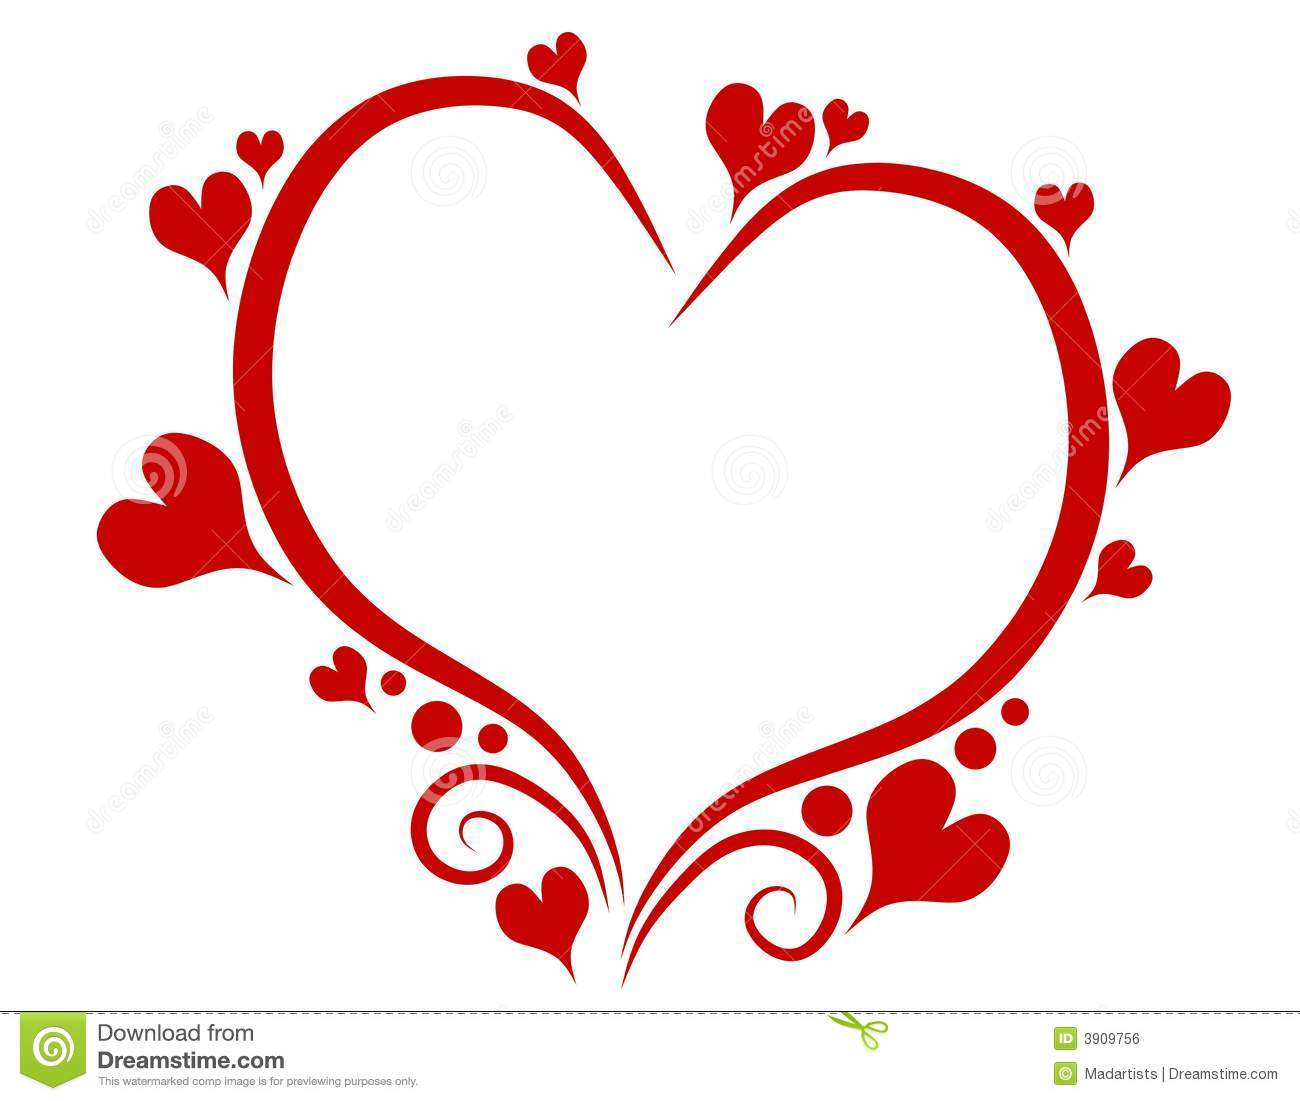 A Clip Art Illustration Featuring A Decorative Red Outline Of A Heart  Isolated On White